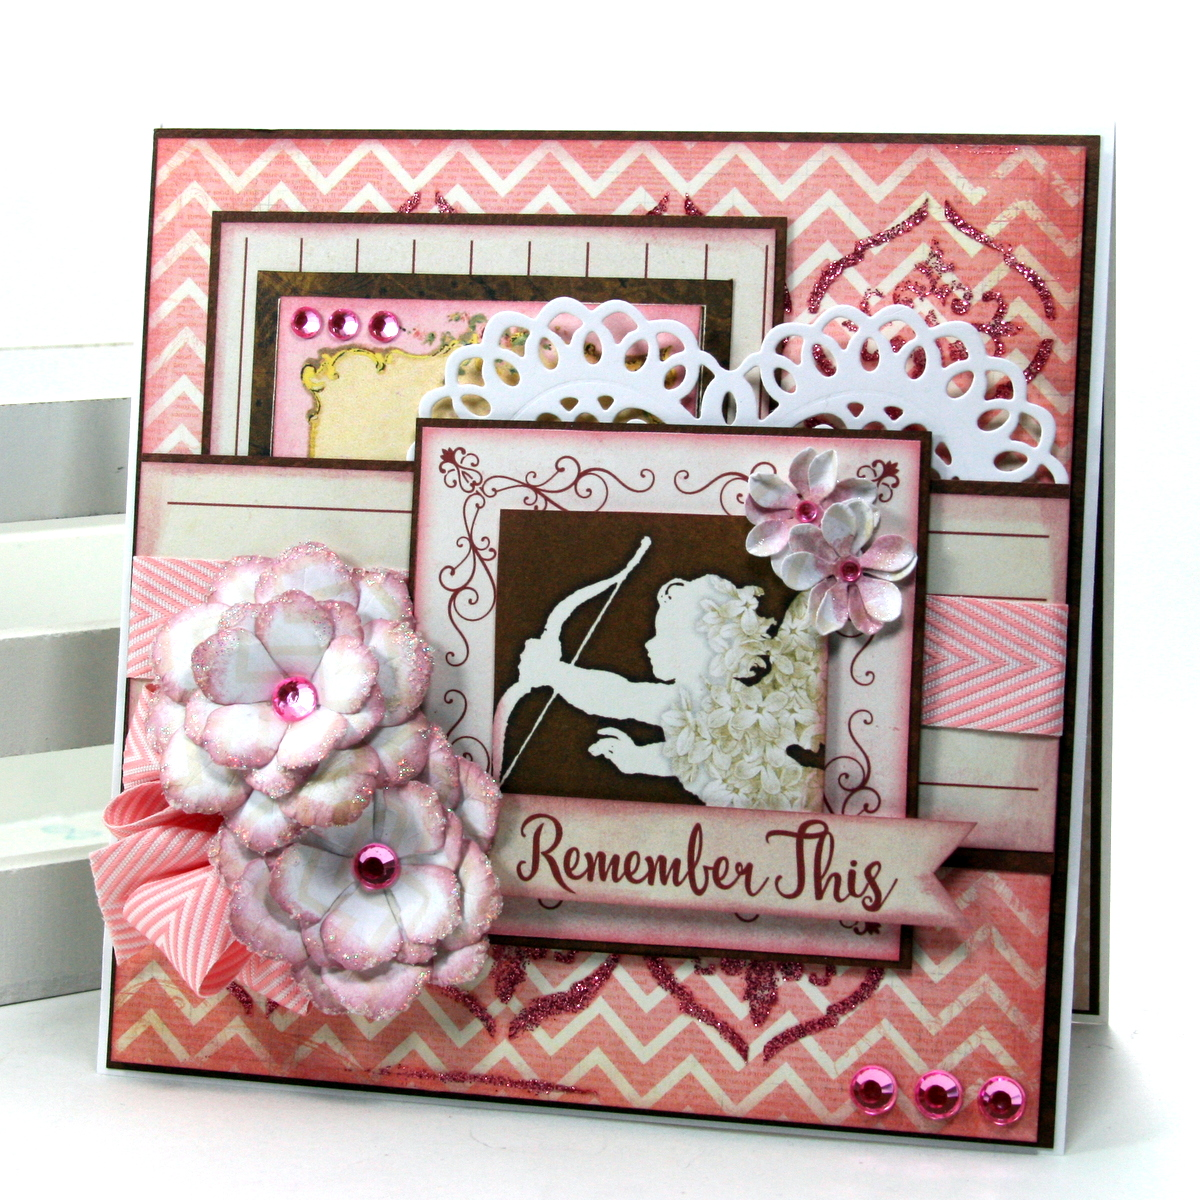 Bobunny love is in the air valentine card ideas featuring remember this valentine greeting card by ginny nemchak using bobunny on this day in january kristyandbryce Image collections